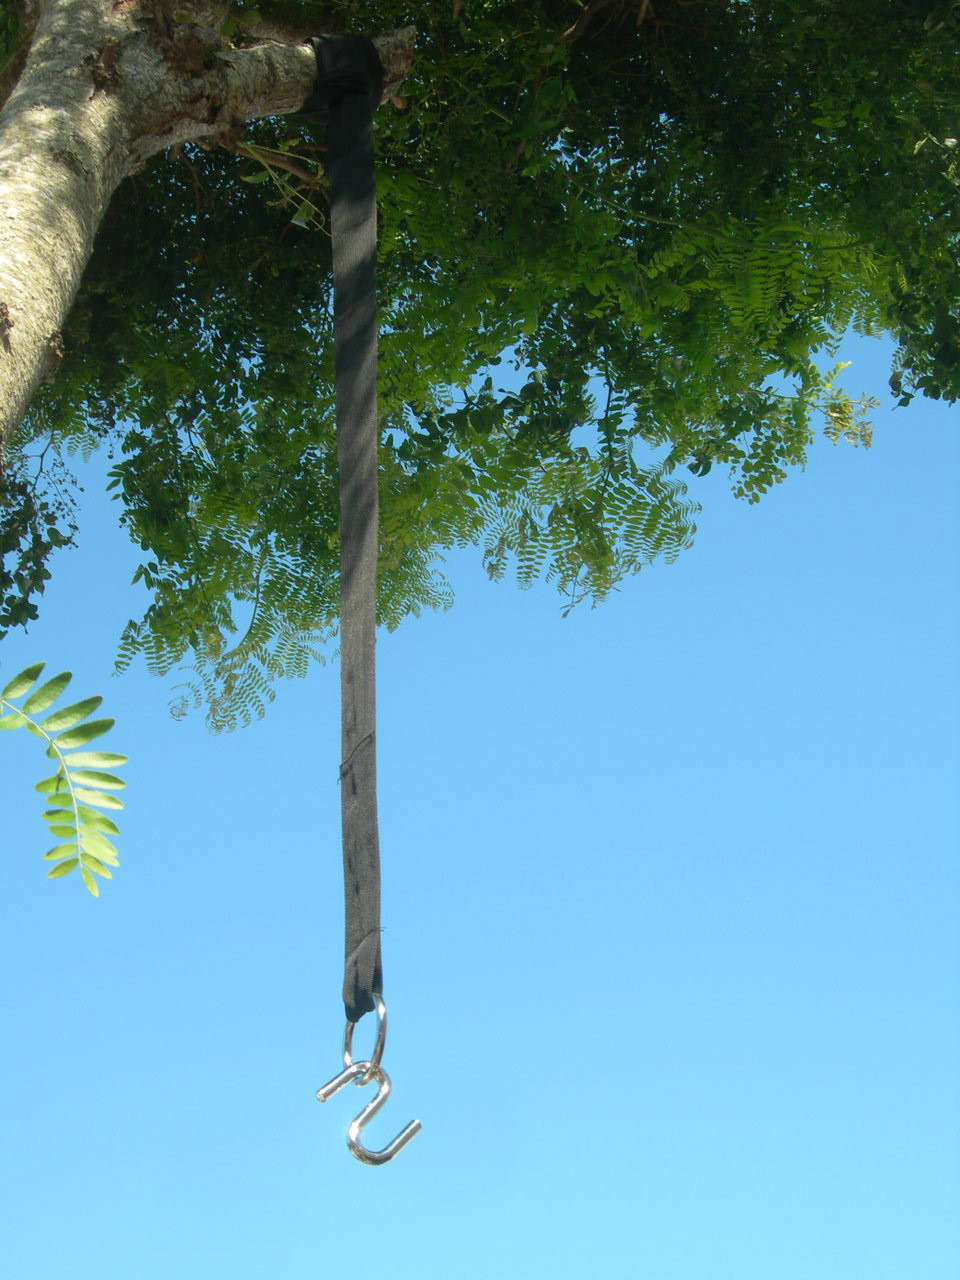 Hang Your Swing/chair Anywhere With Our Strong, Nylon Tree Straps.